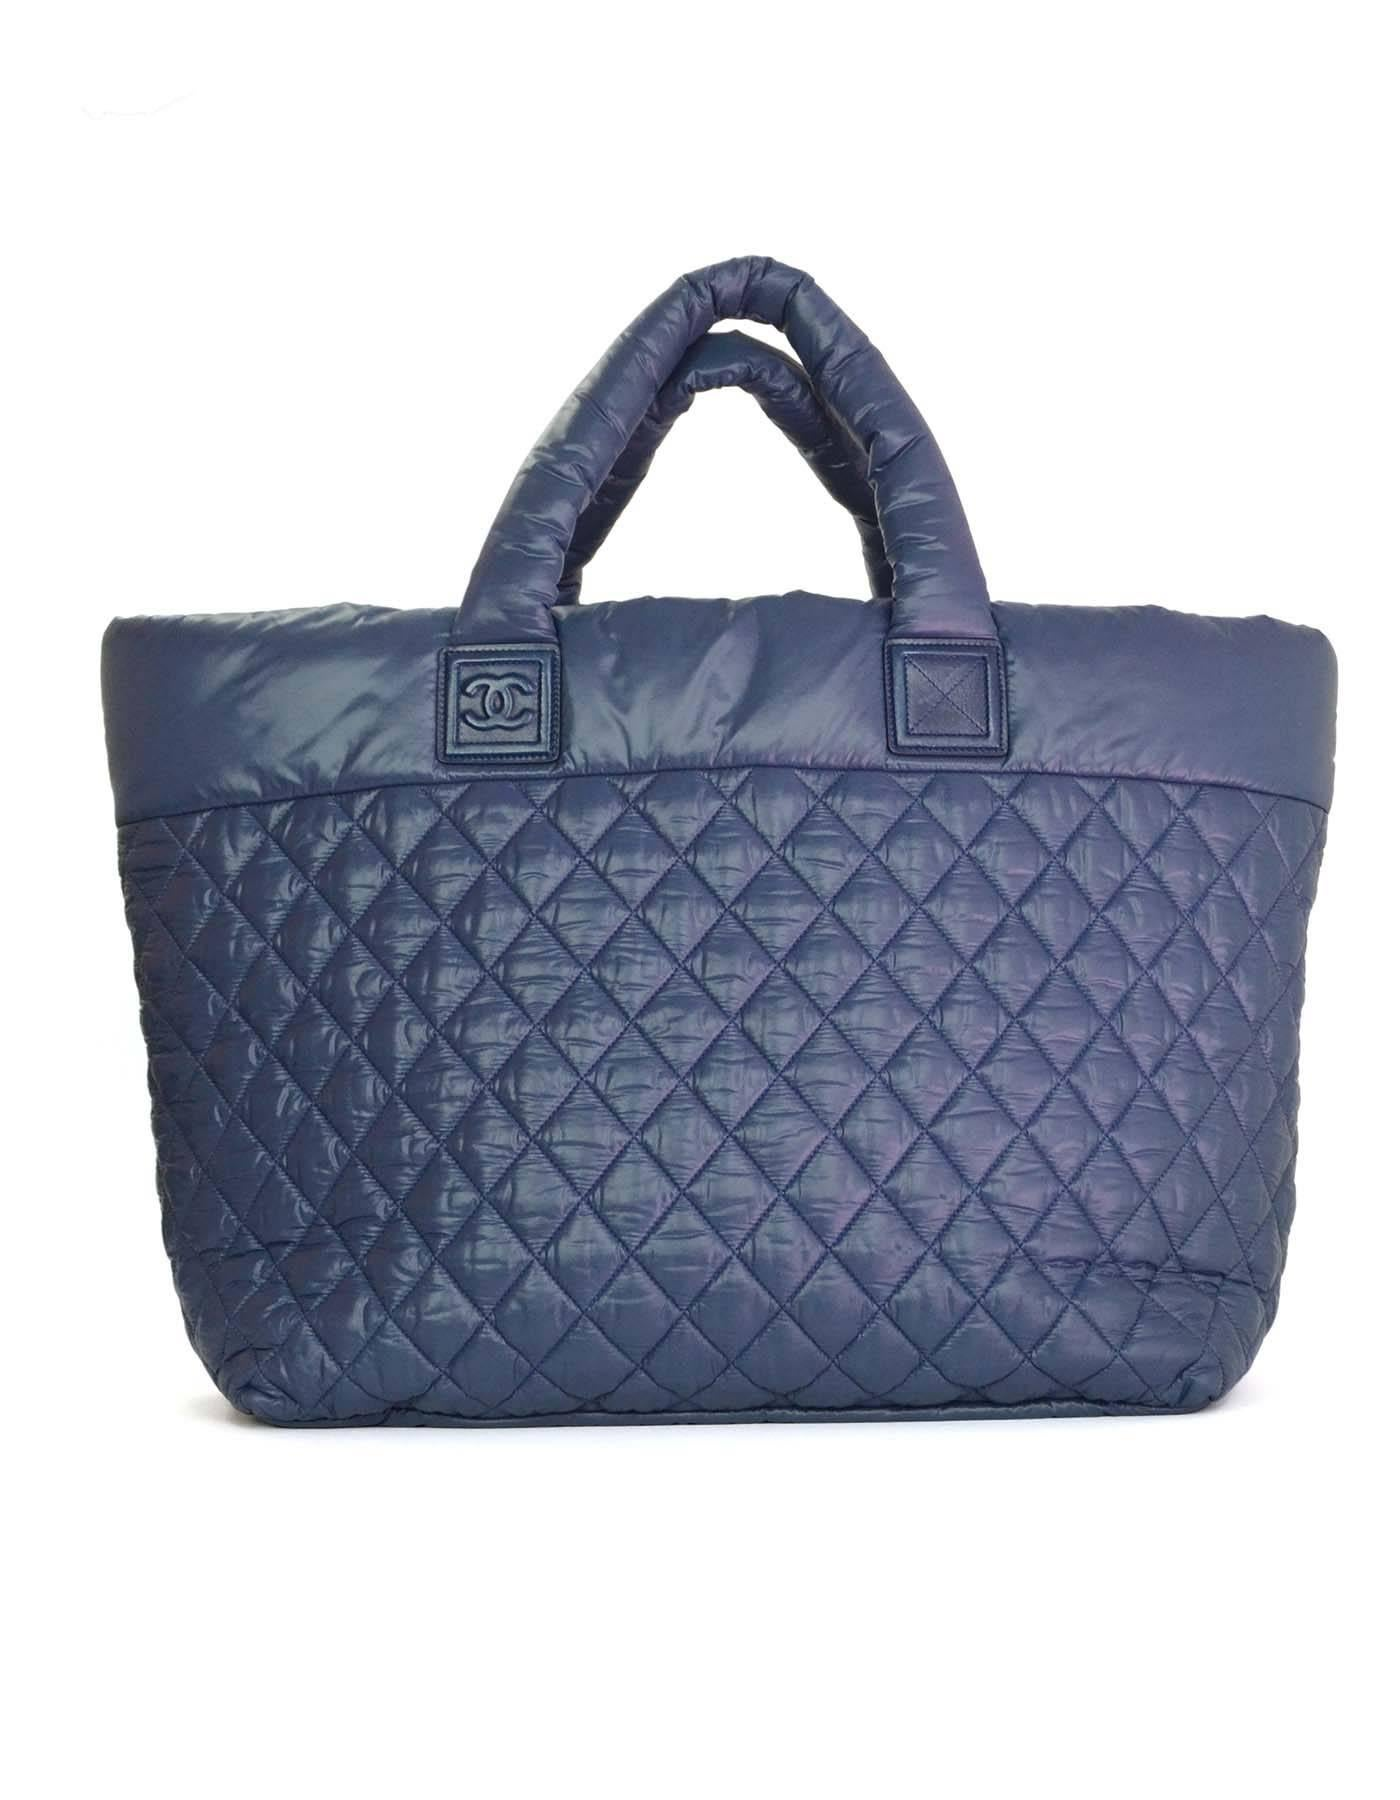 90e983701b8e Chanel Blue Nylon Quilted XL Cocoon Tote Bag For Sale at 1stdibs